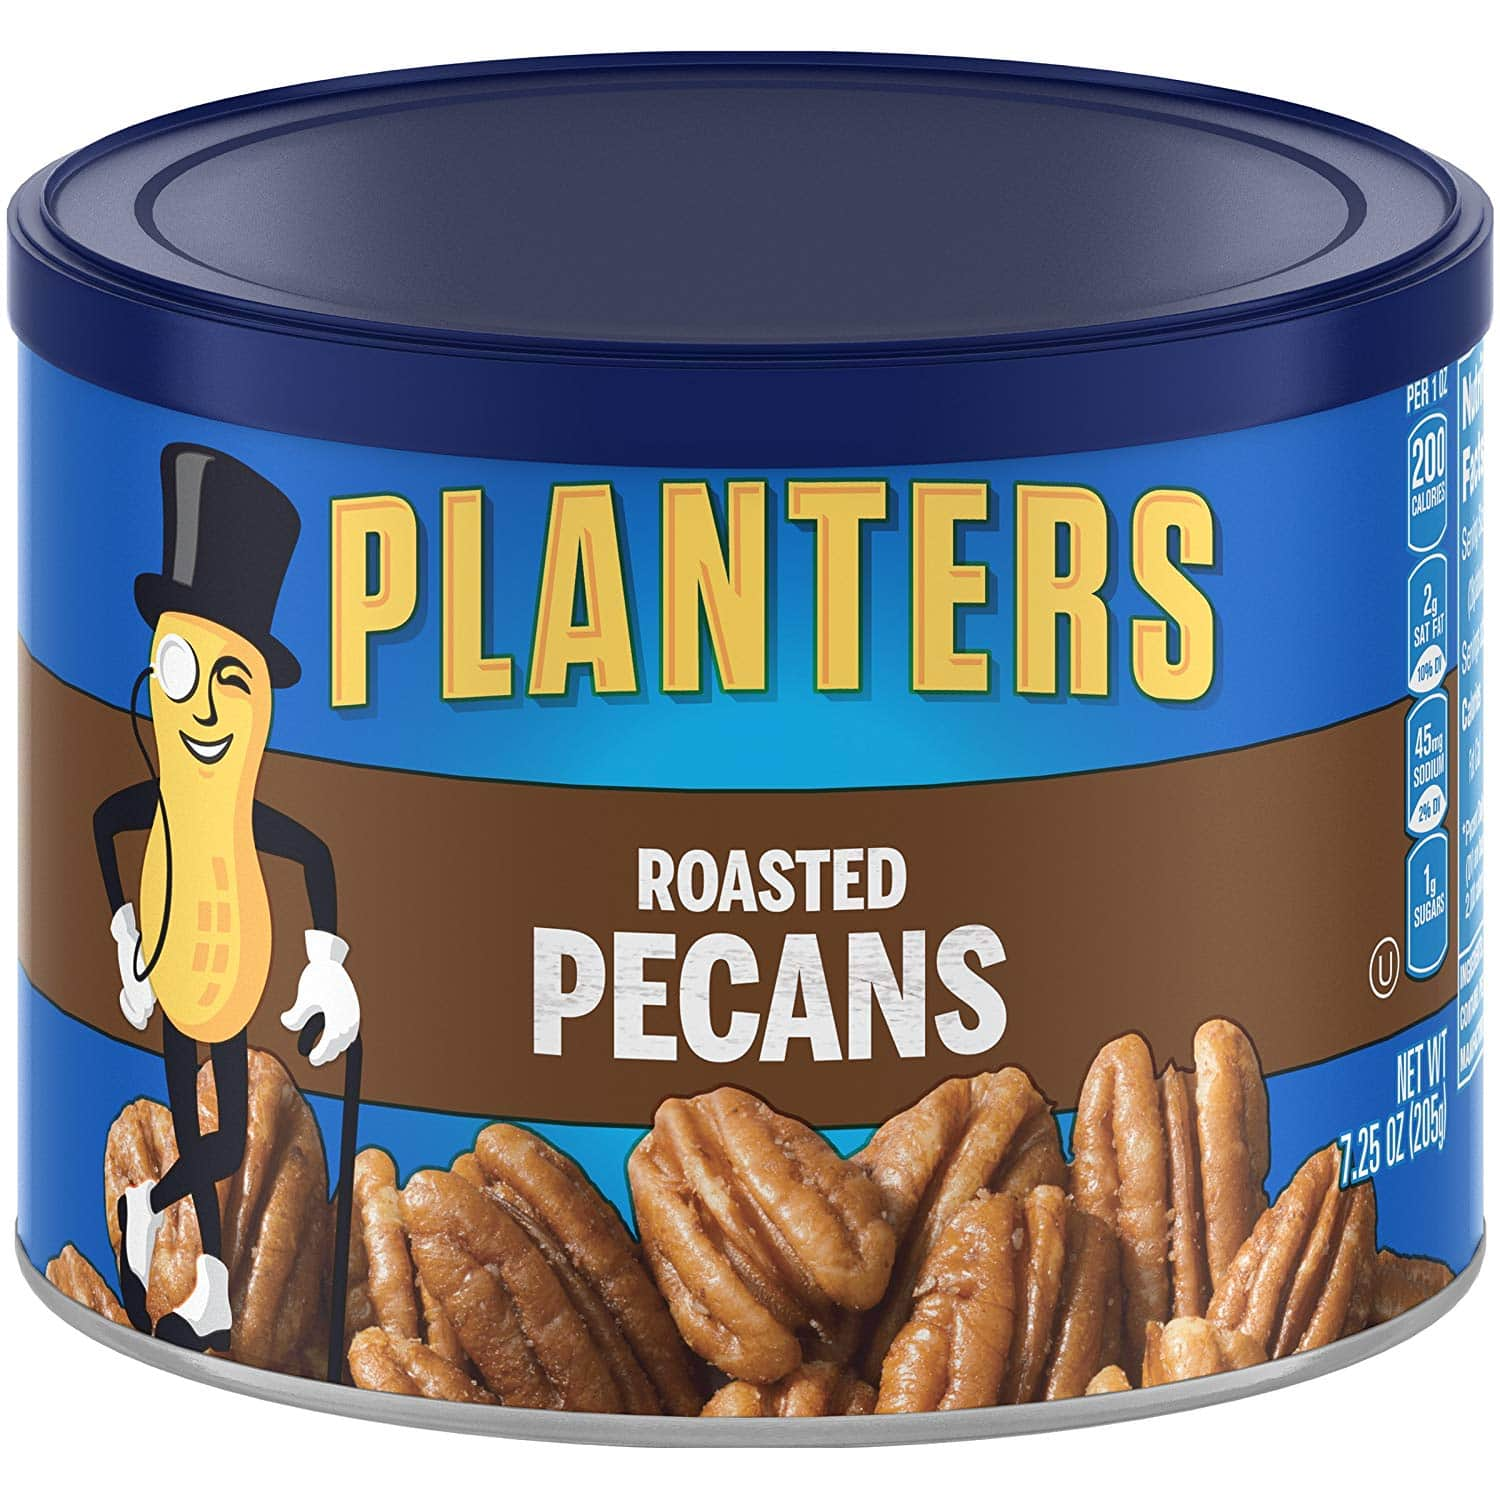 7.25oz Planters Pecans (Roasted & Salted) $4.68 or Less w/ S&S + Free Shipping ~ Amazon